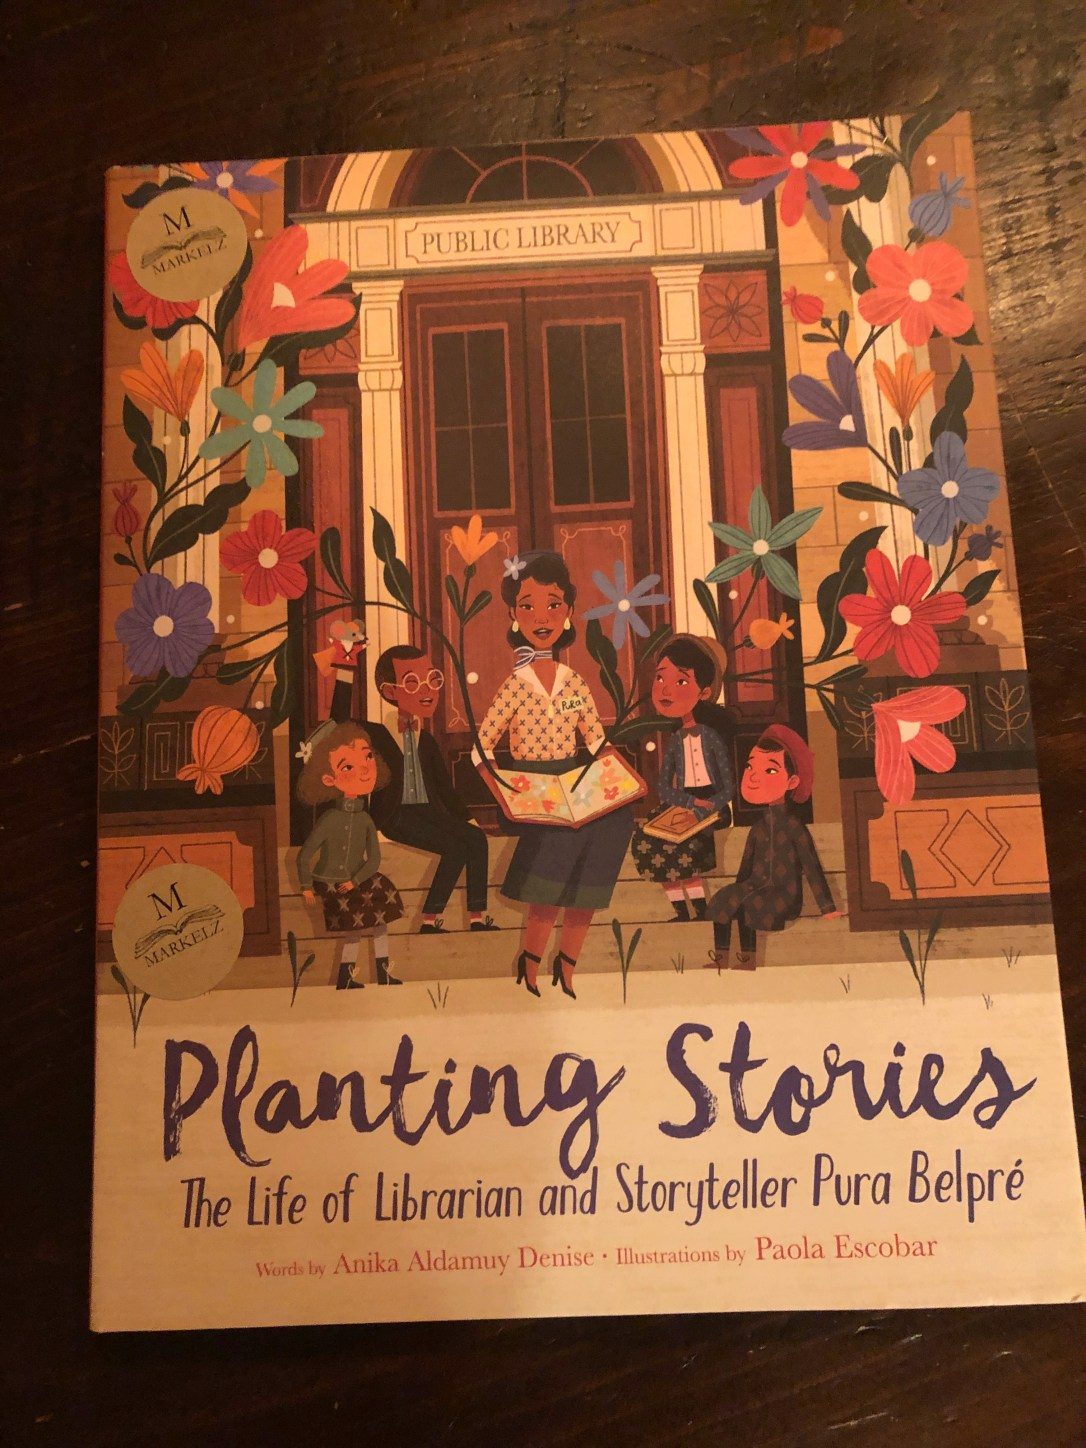 Planting Stories: The Life of Librarian and Storyteller Pura Belpré, by Anika Aldamuy Denise, illustrated by Paola Escobar